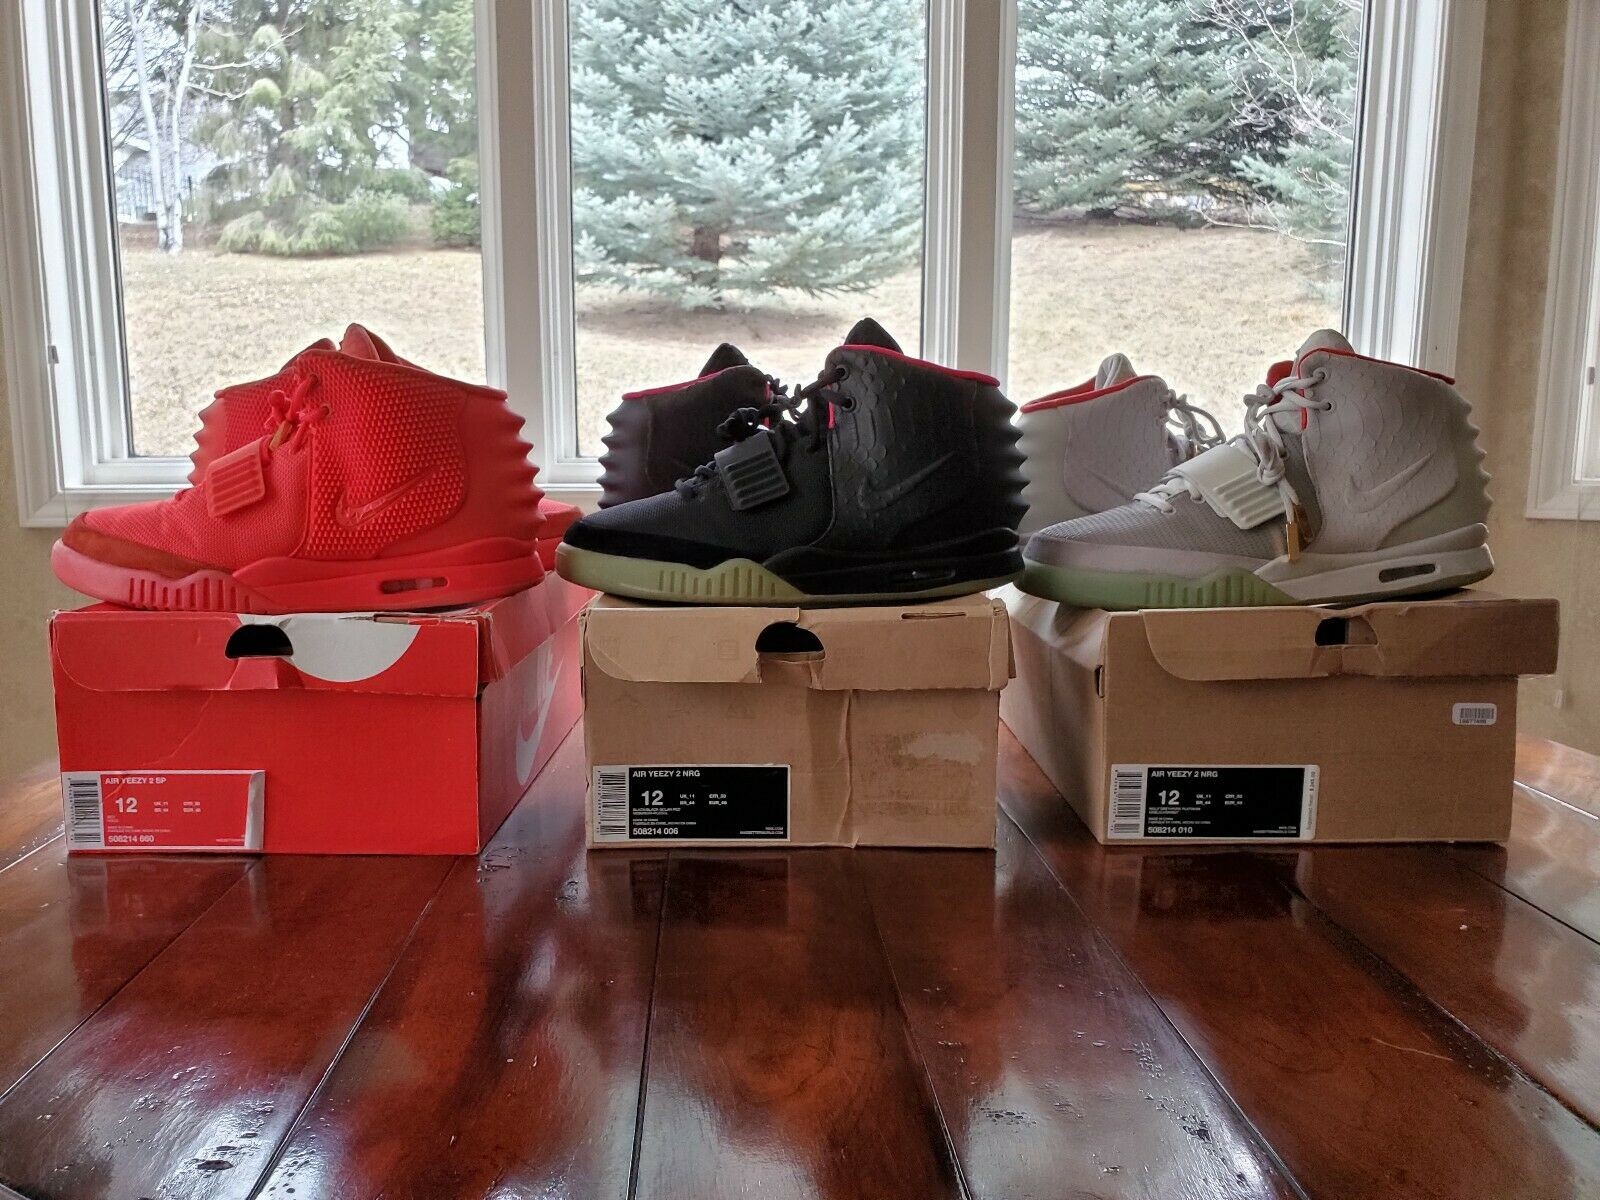 Nike Air Yeezy 2 Solar, Solar, Solar, Red October, Plats Size 12 Lot Used 100% AUTHENTIC 3f5c5b